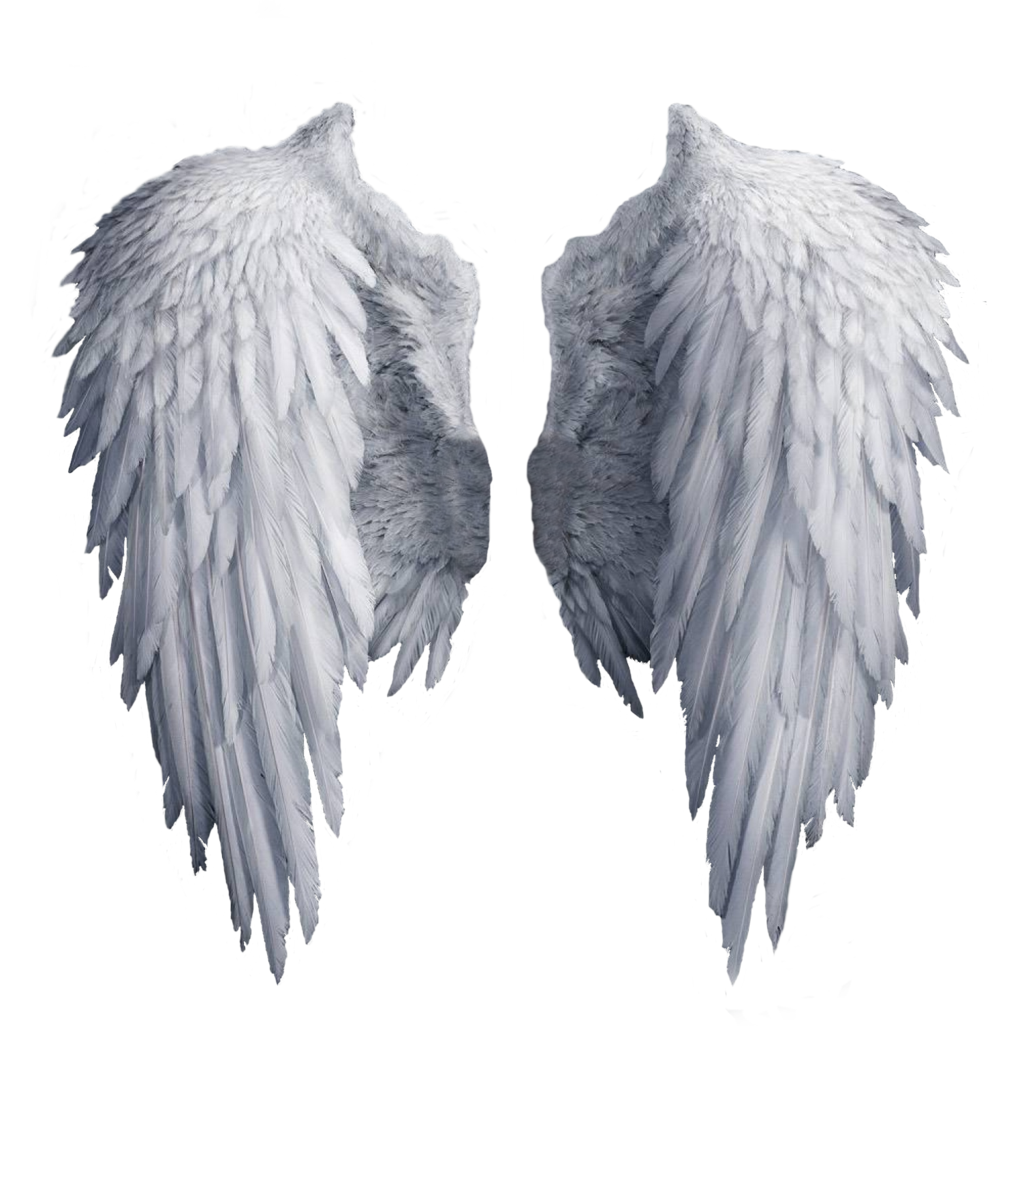 Png angels. Realistic angel wings drawing